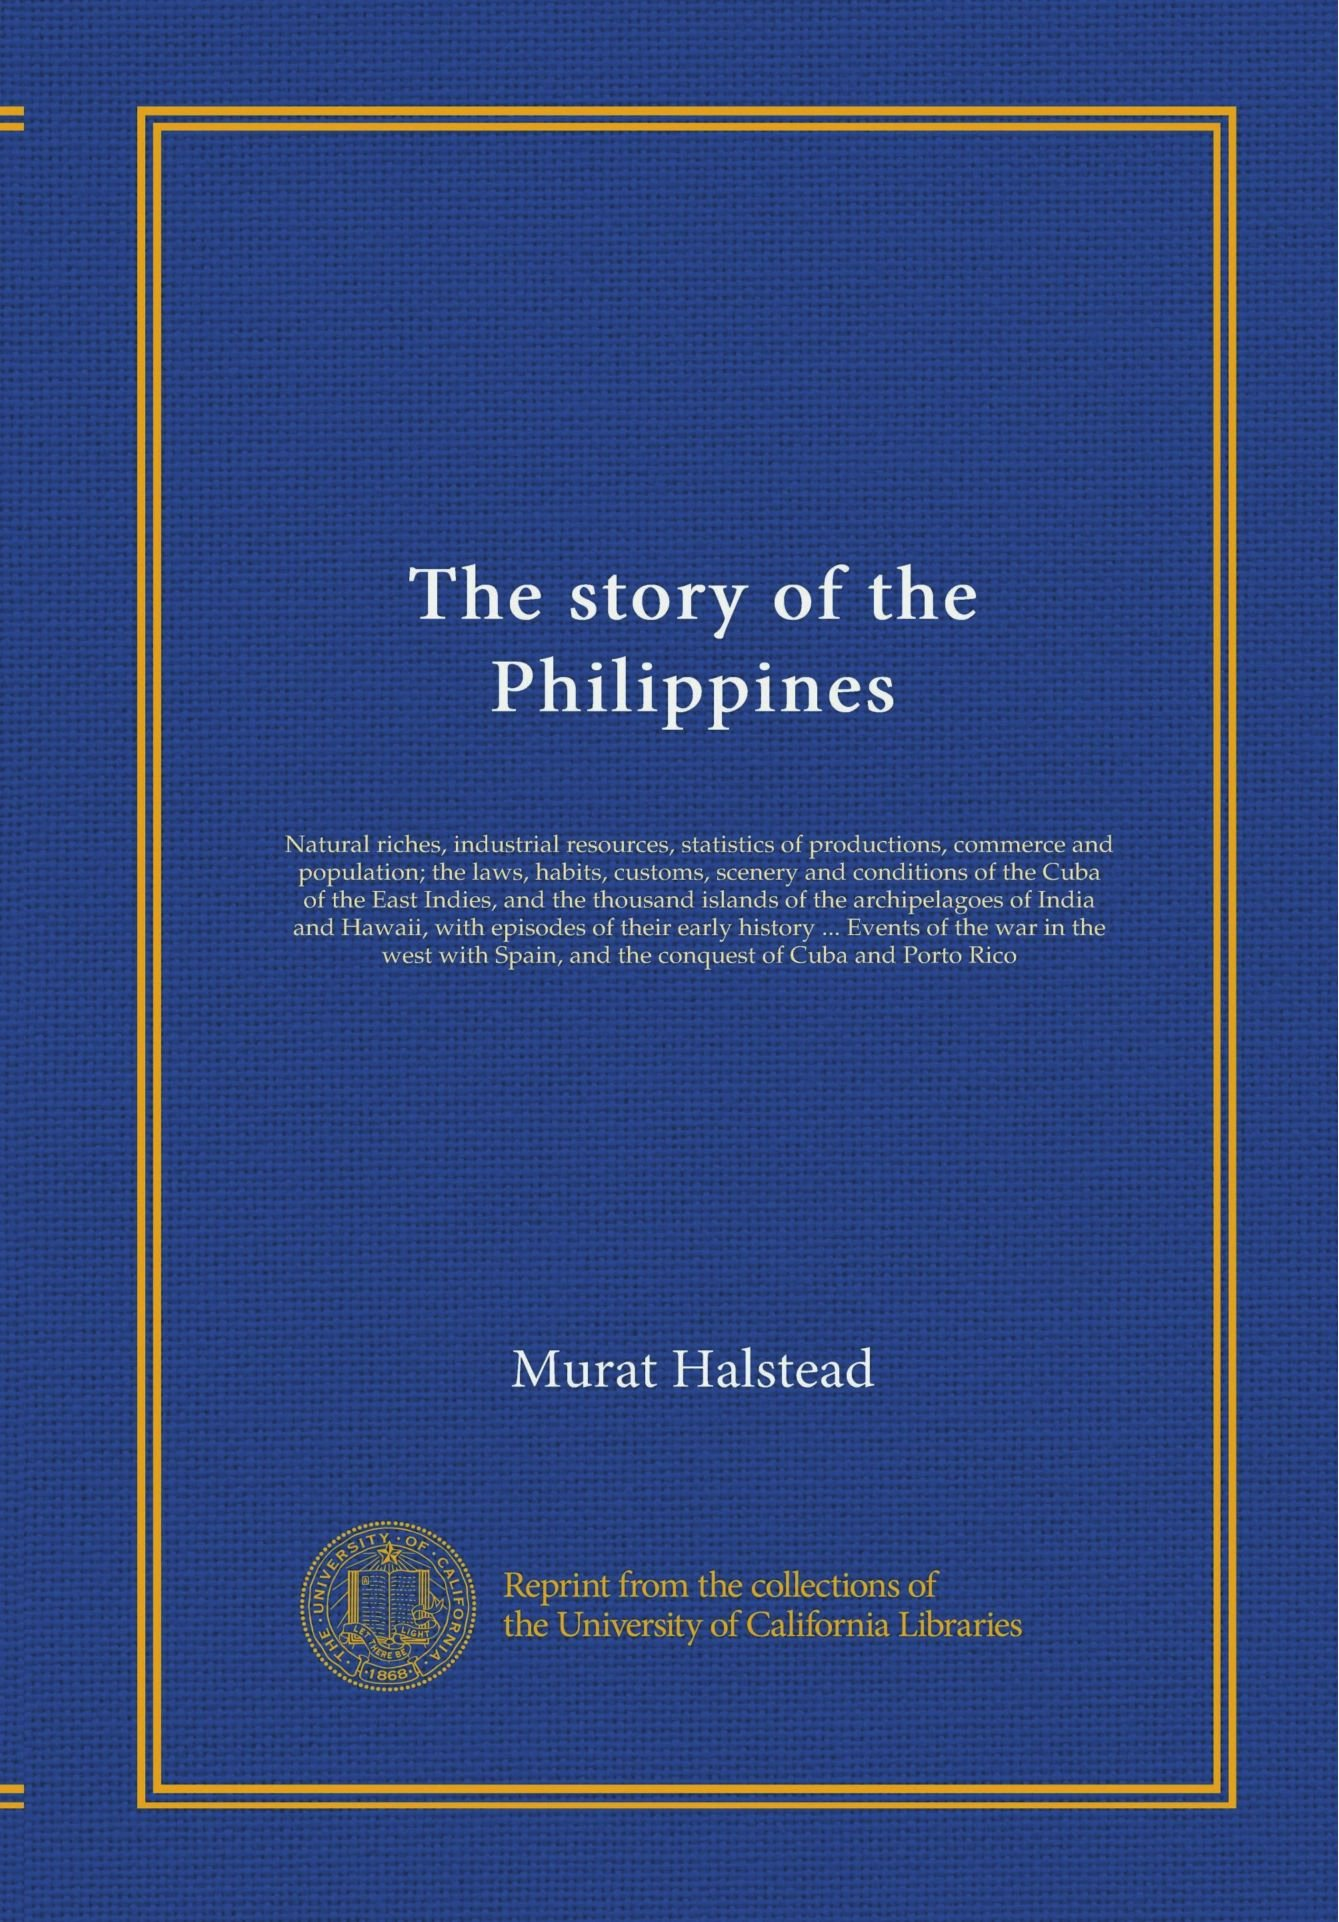 The story of the Philippines: Natural riches, industrial resources, statistics of productions, commerce and population; the laws, habits, customs, ... archipelagoes of India and Hawaii, with...